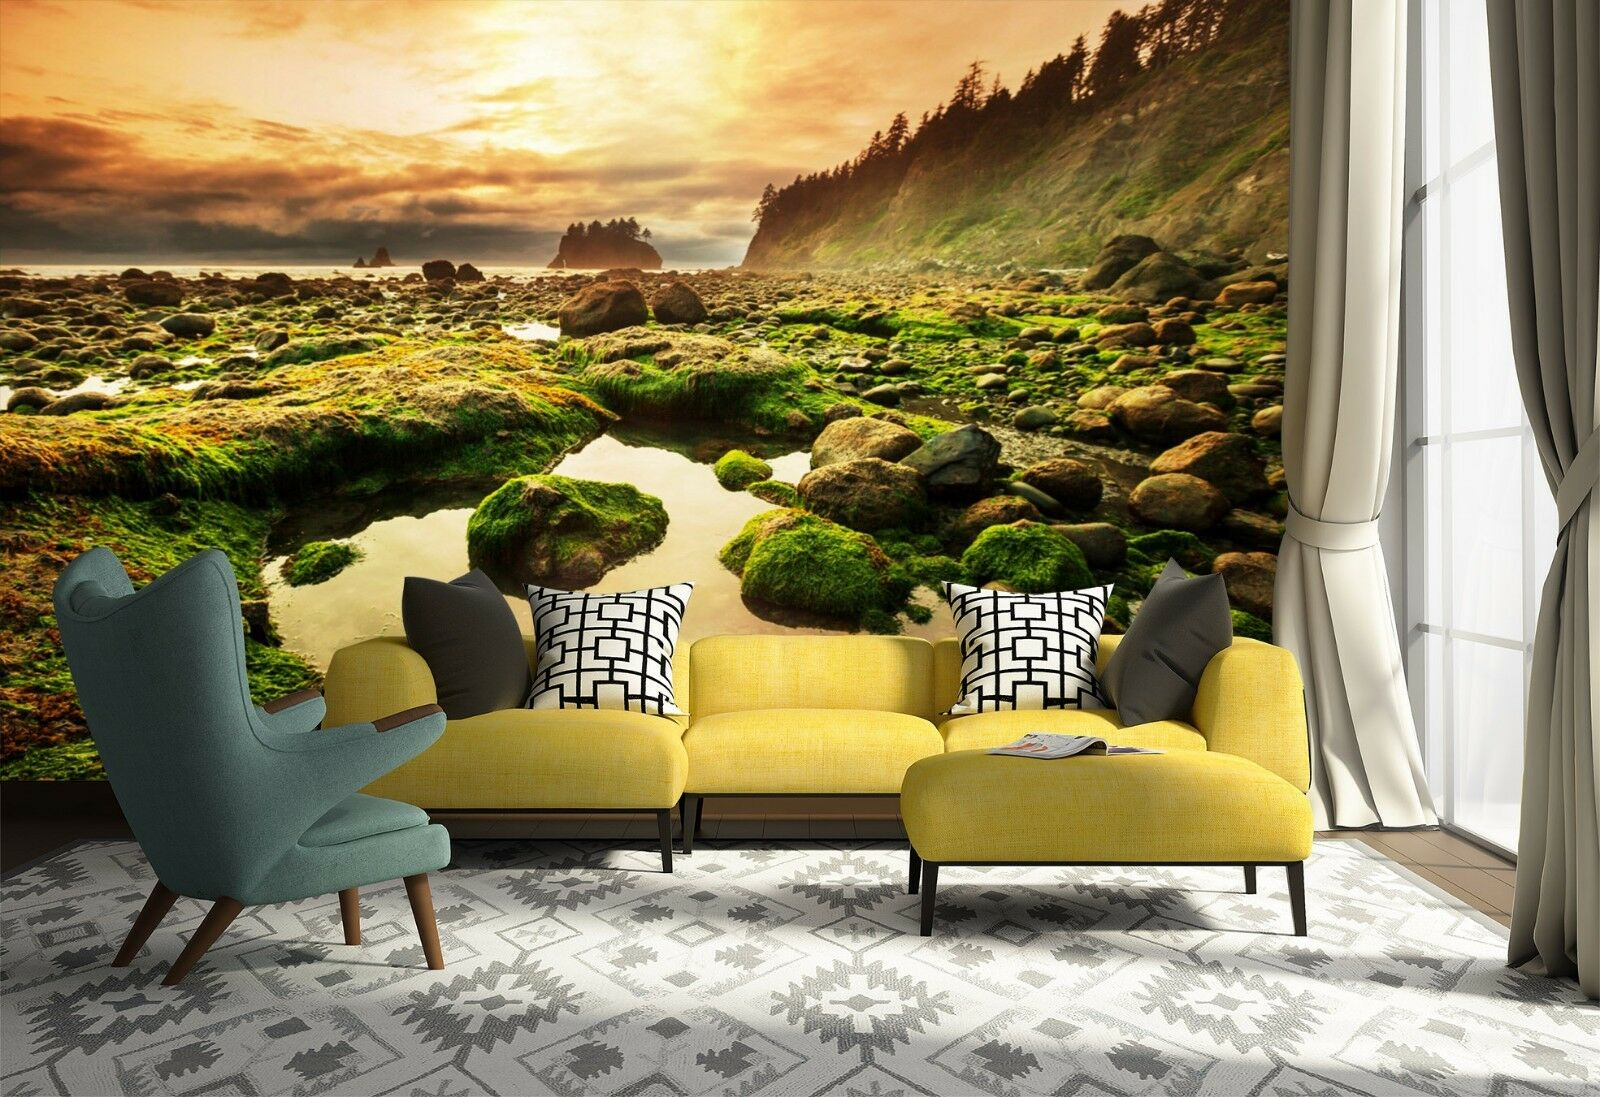 3D Sunset forest 252 Wall Paper wall Print Decal Wall Deco Indoor wall Mural